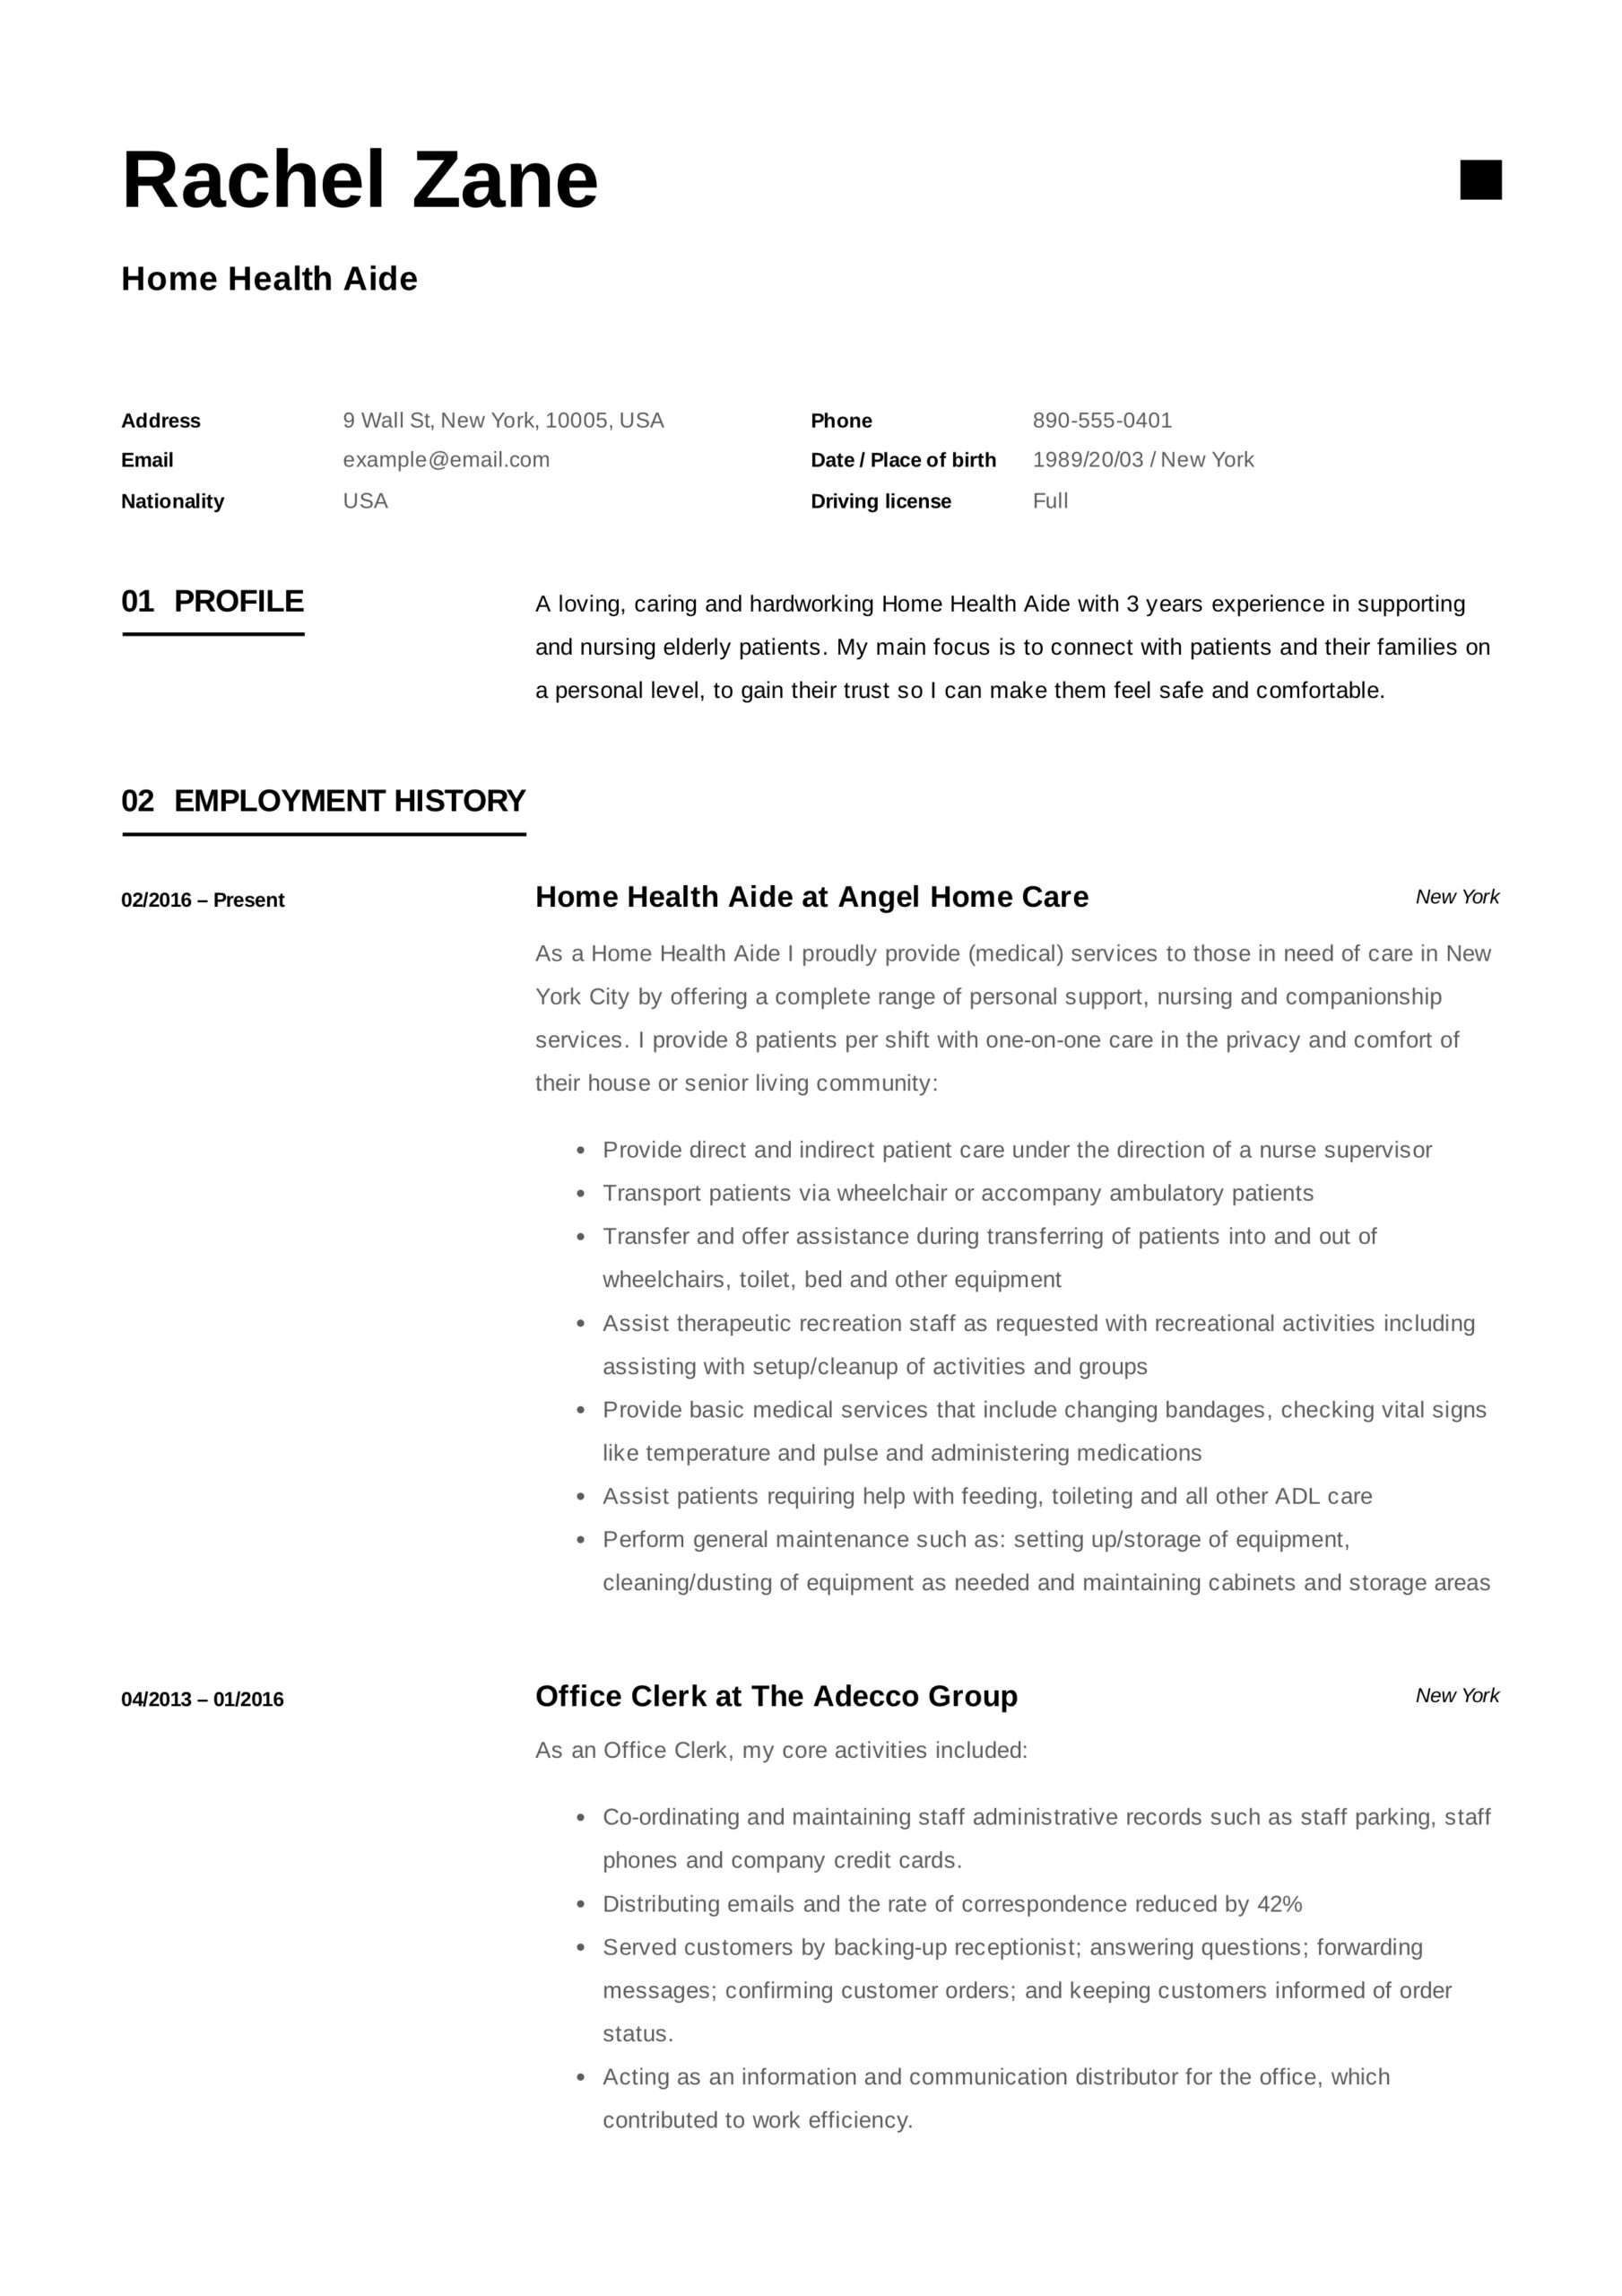 home health aide resume sample writing guide samples pdf private healt professional Resume Private Home Health Aide Resume